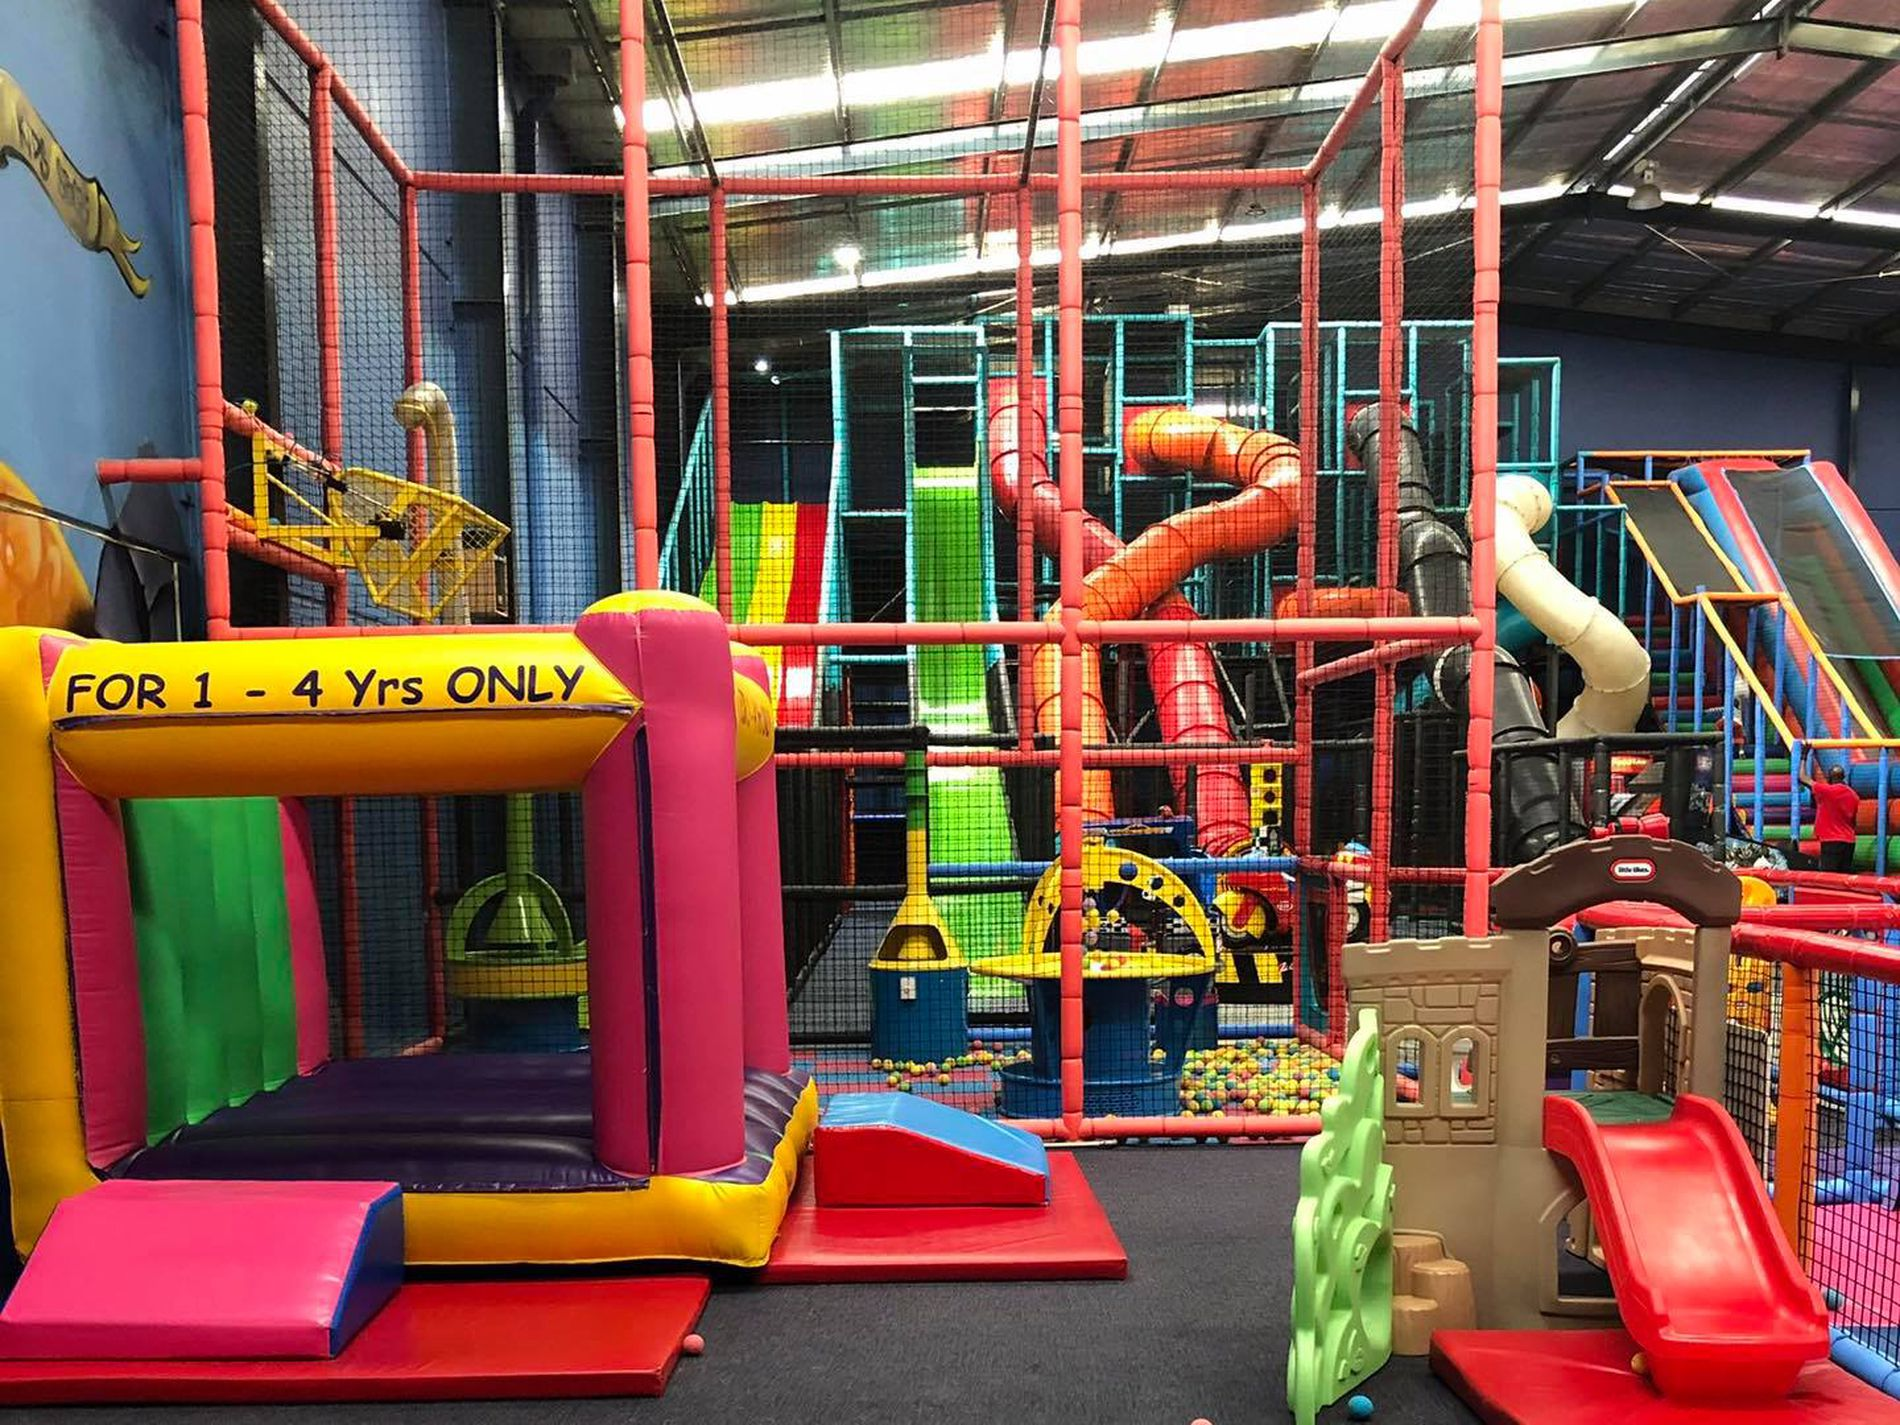 Play Centre and Cafe Business for Sale in South East